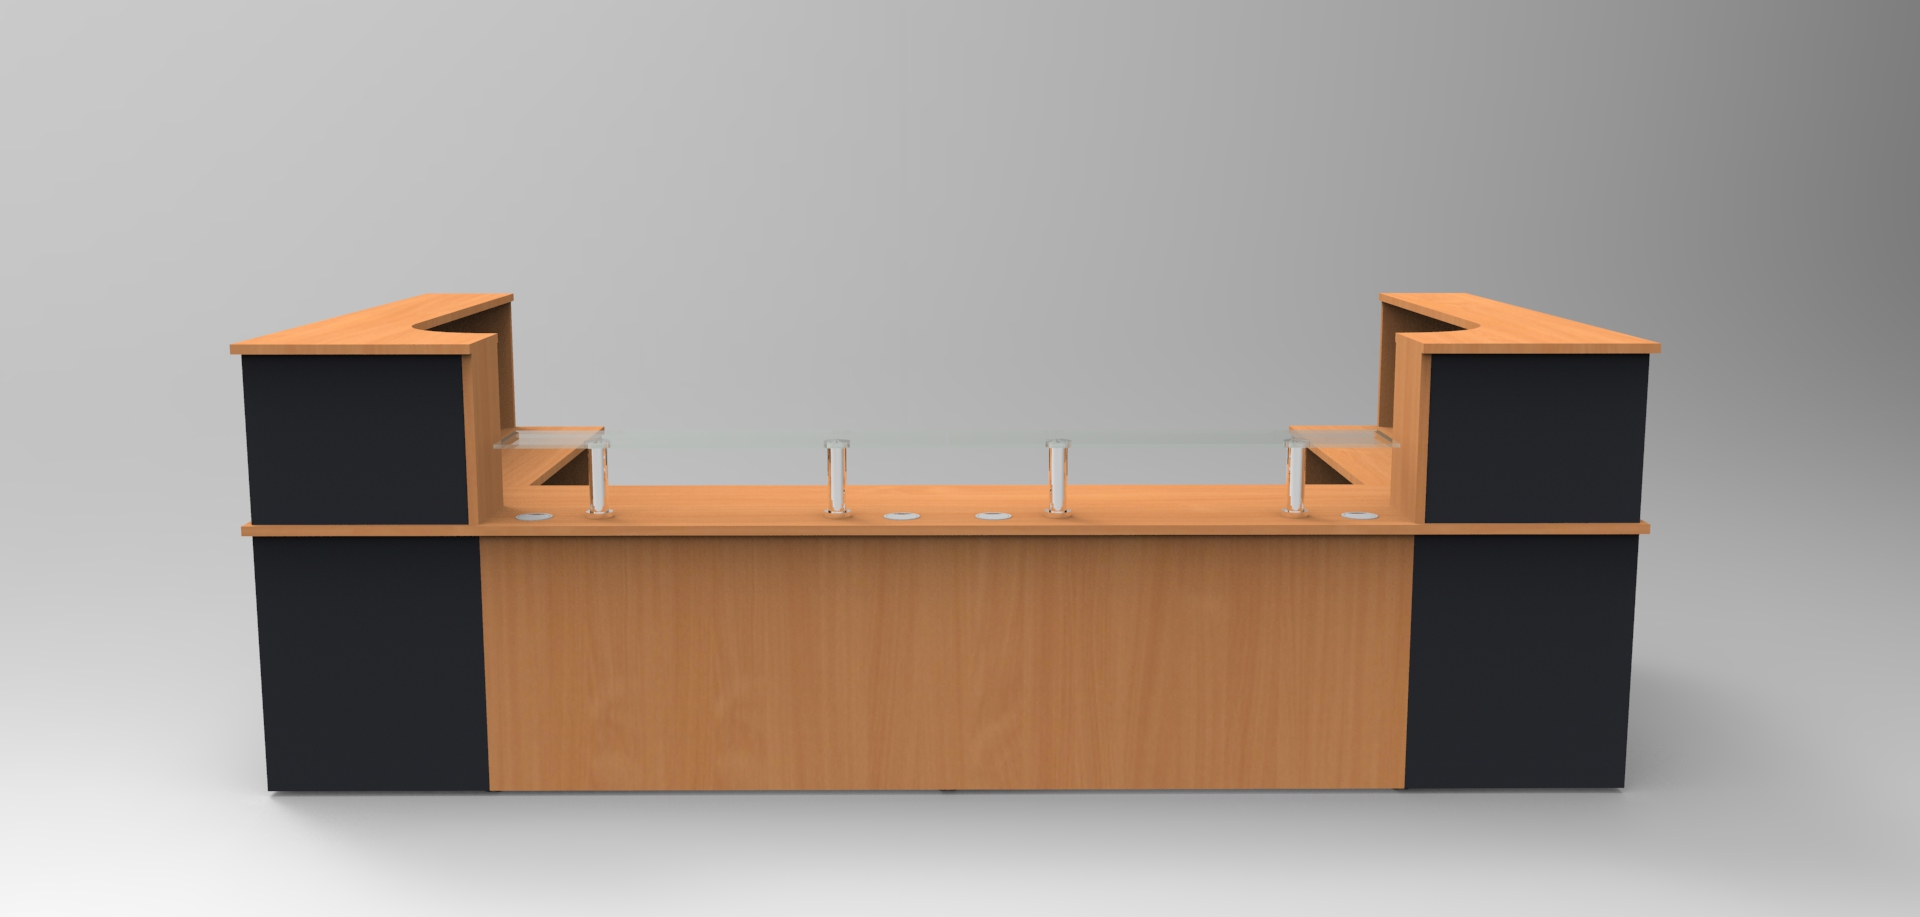 Image 42C - Classic reception desk finished in Beech & Graphite Grey shown with open front units379